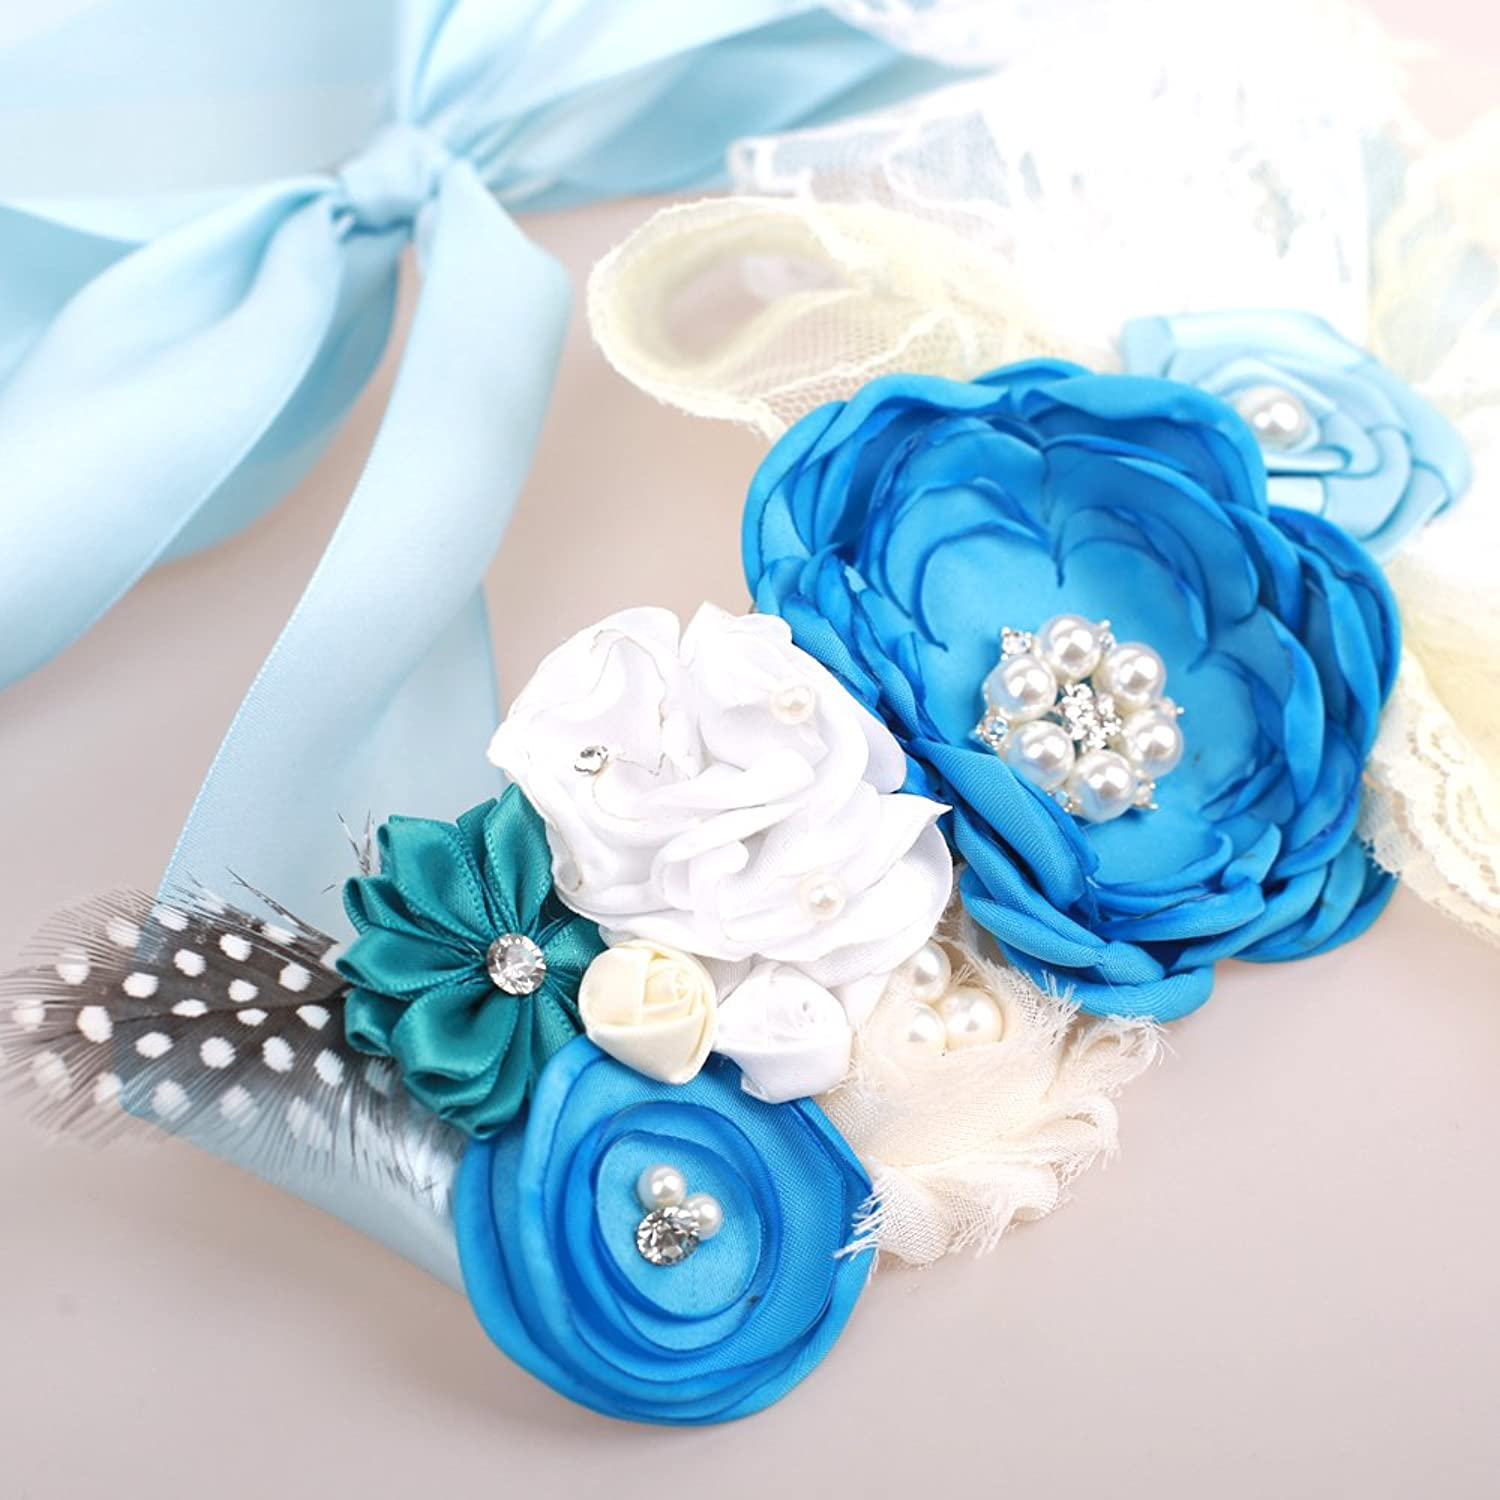 Amazon.com: Maternity Sash Flower Belt Baby Shower Dress Accessories ...